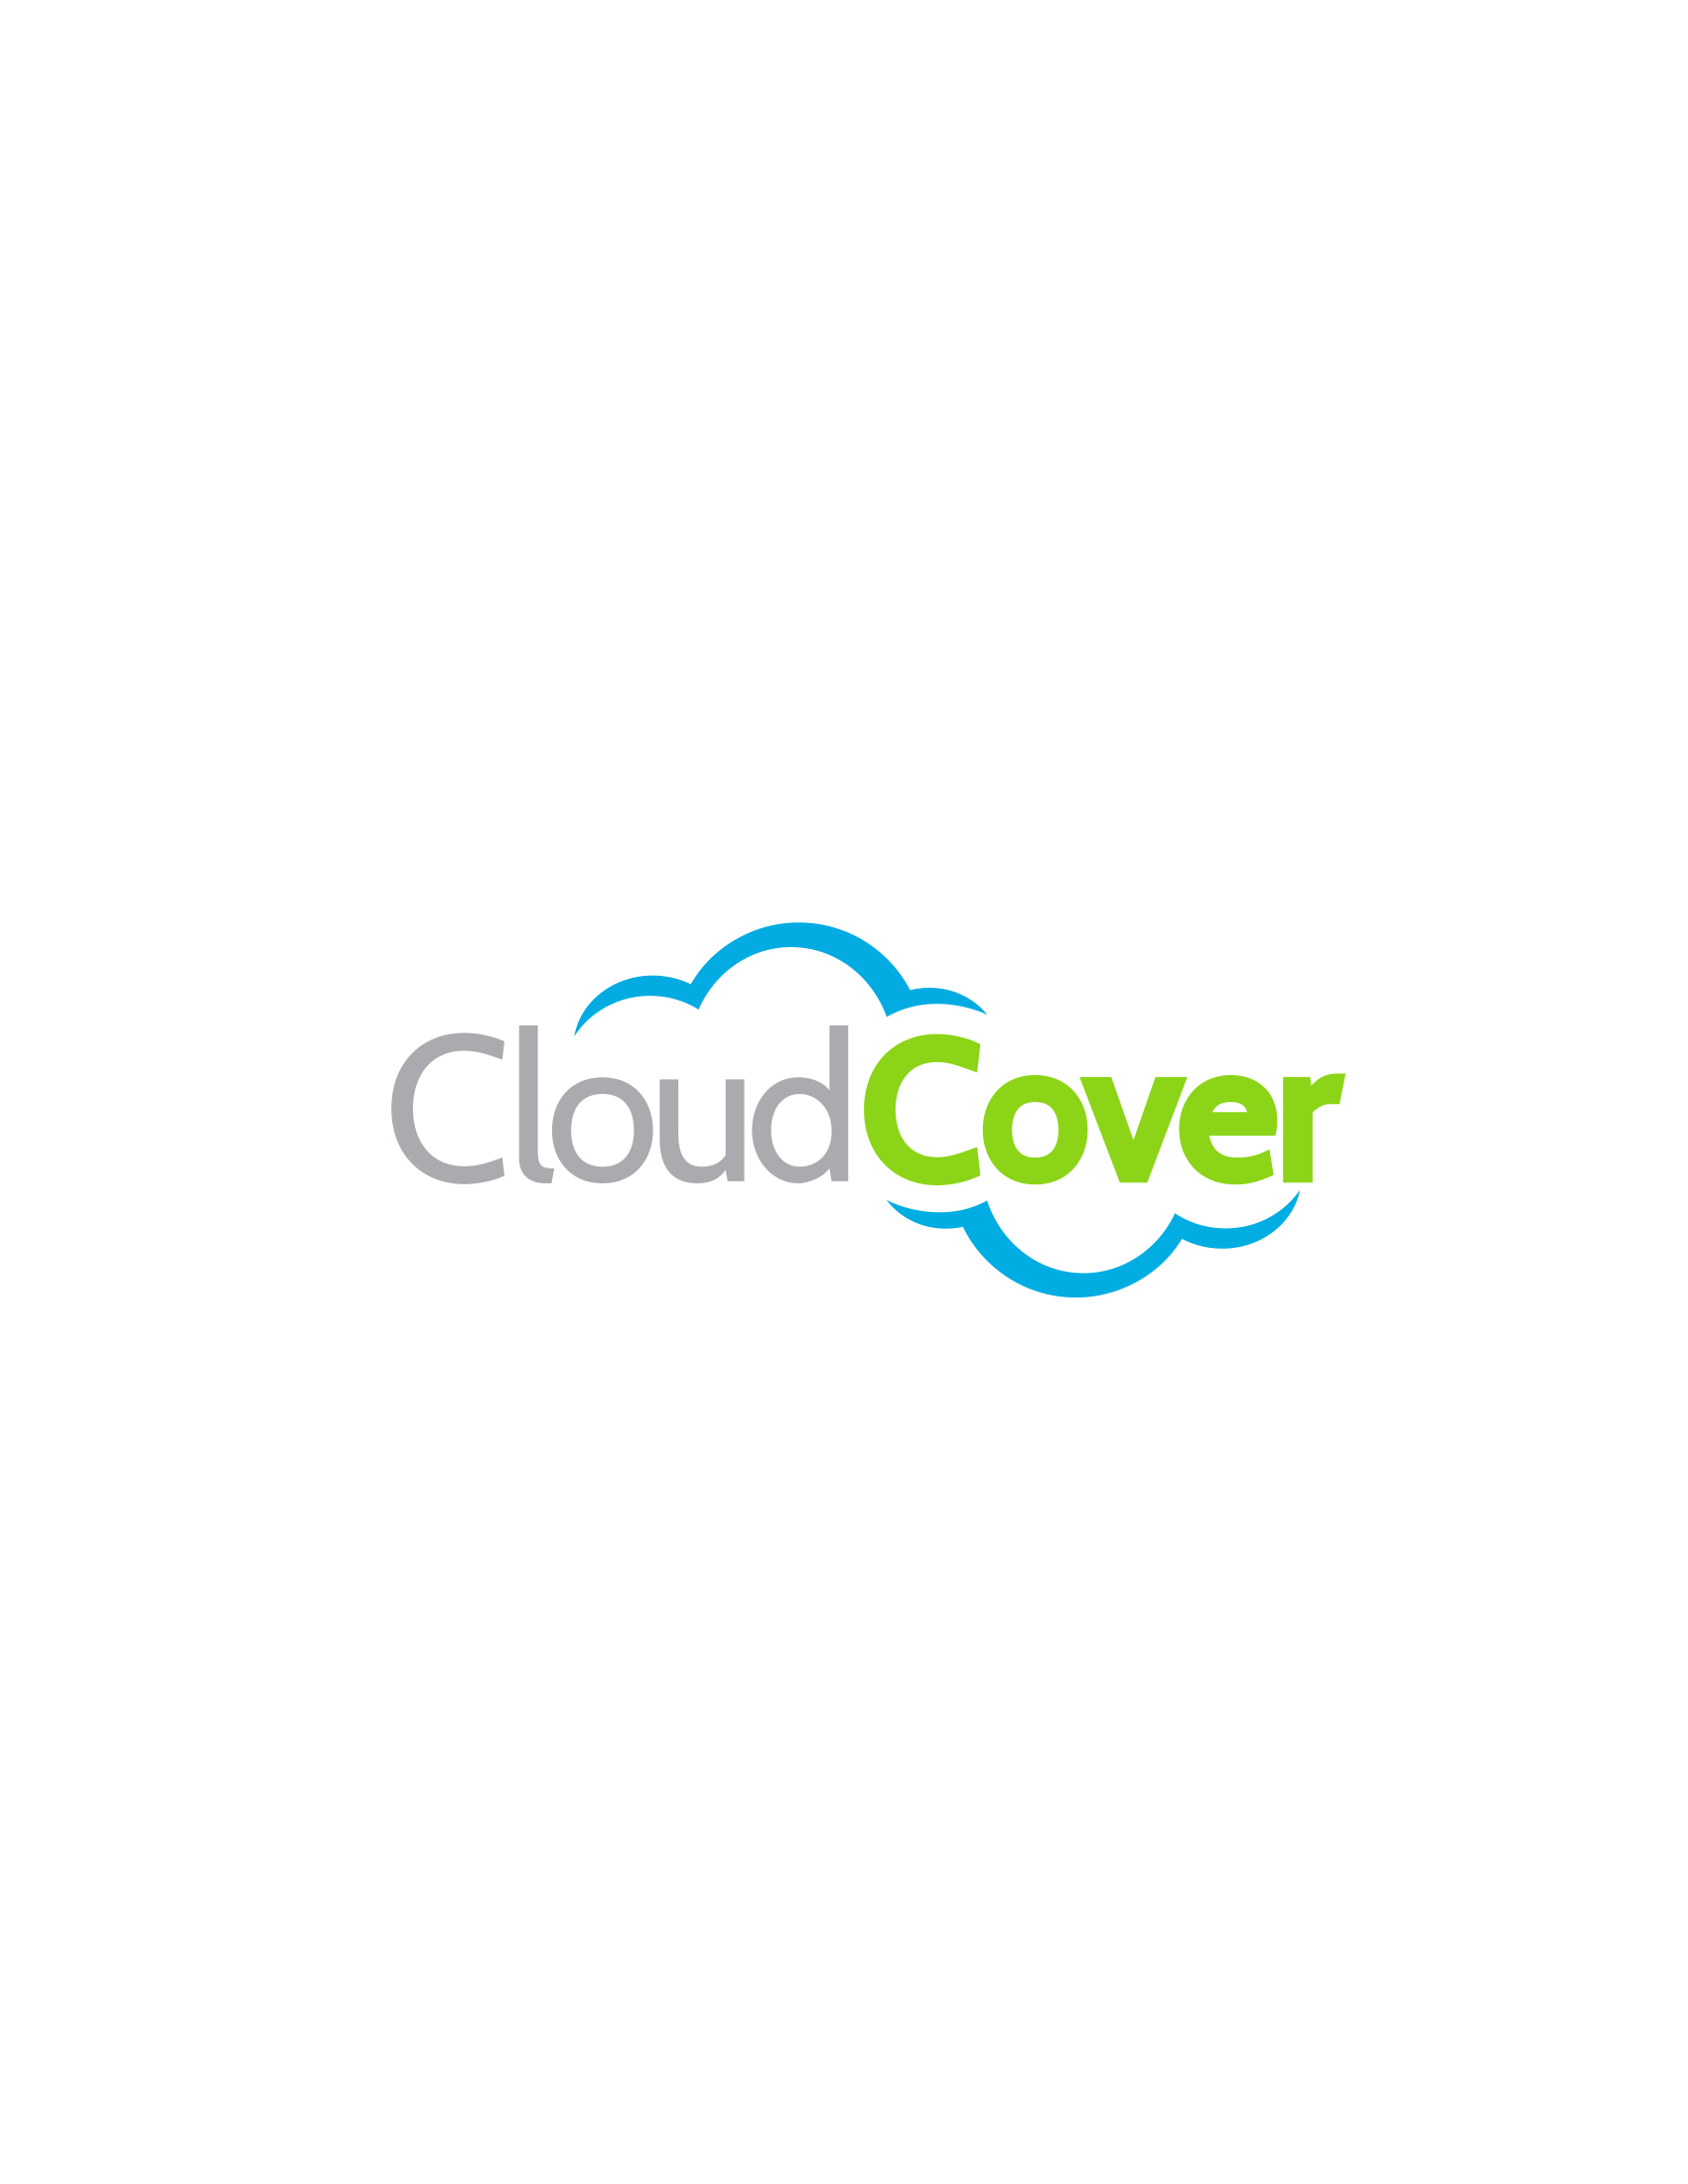 Logo for IT managed services provider